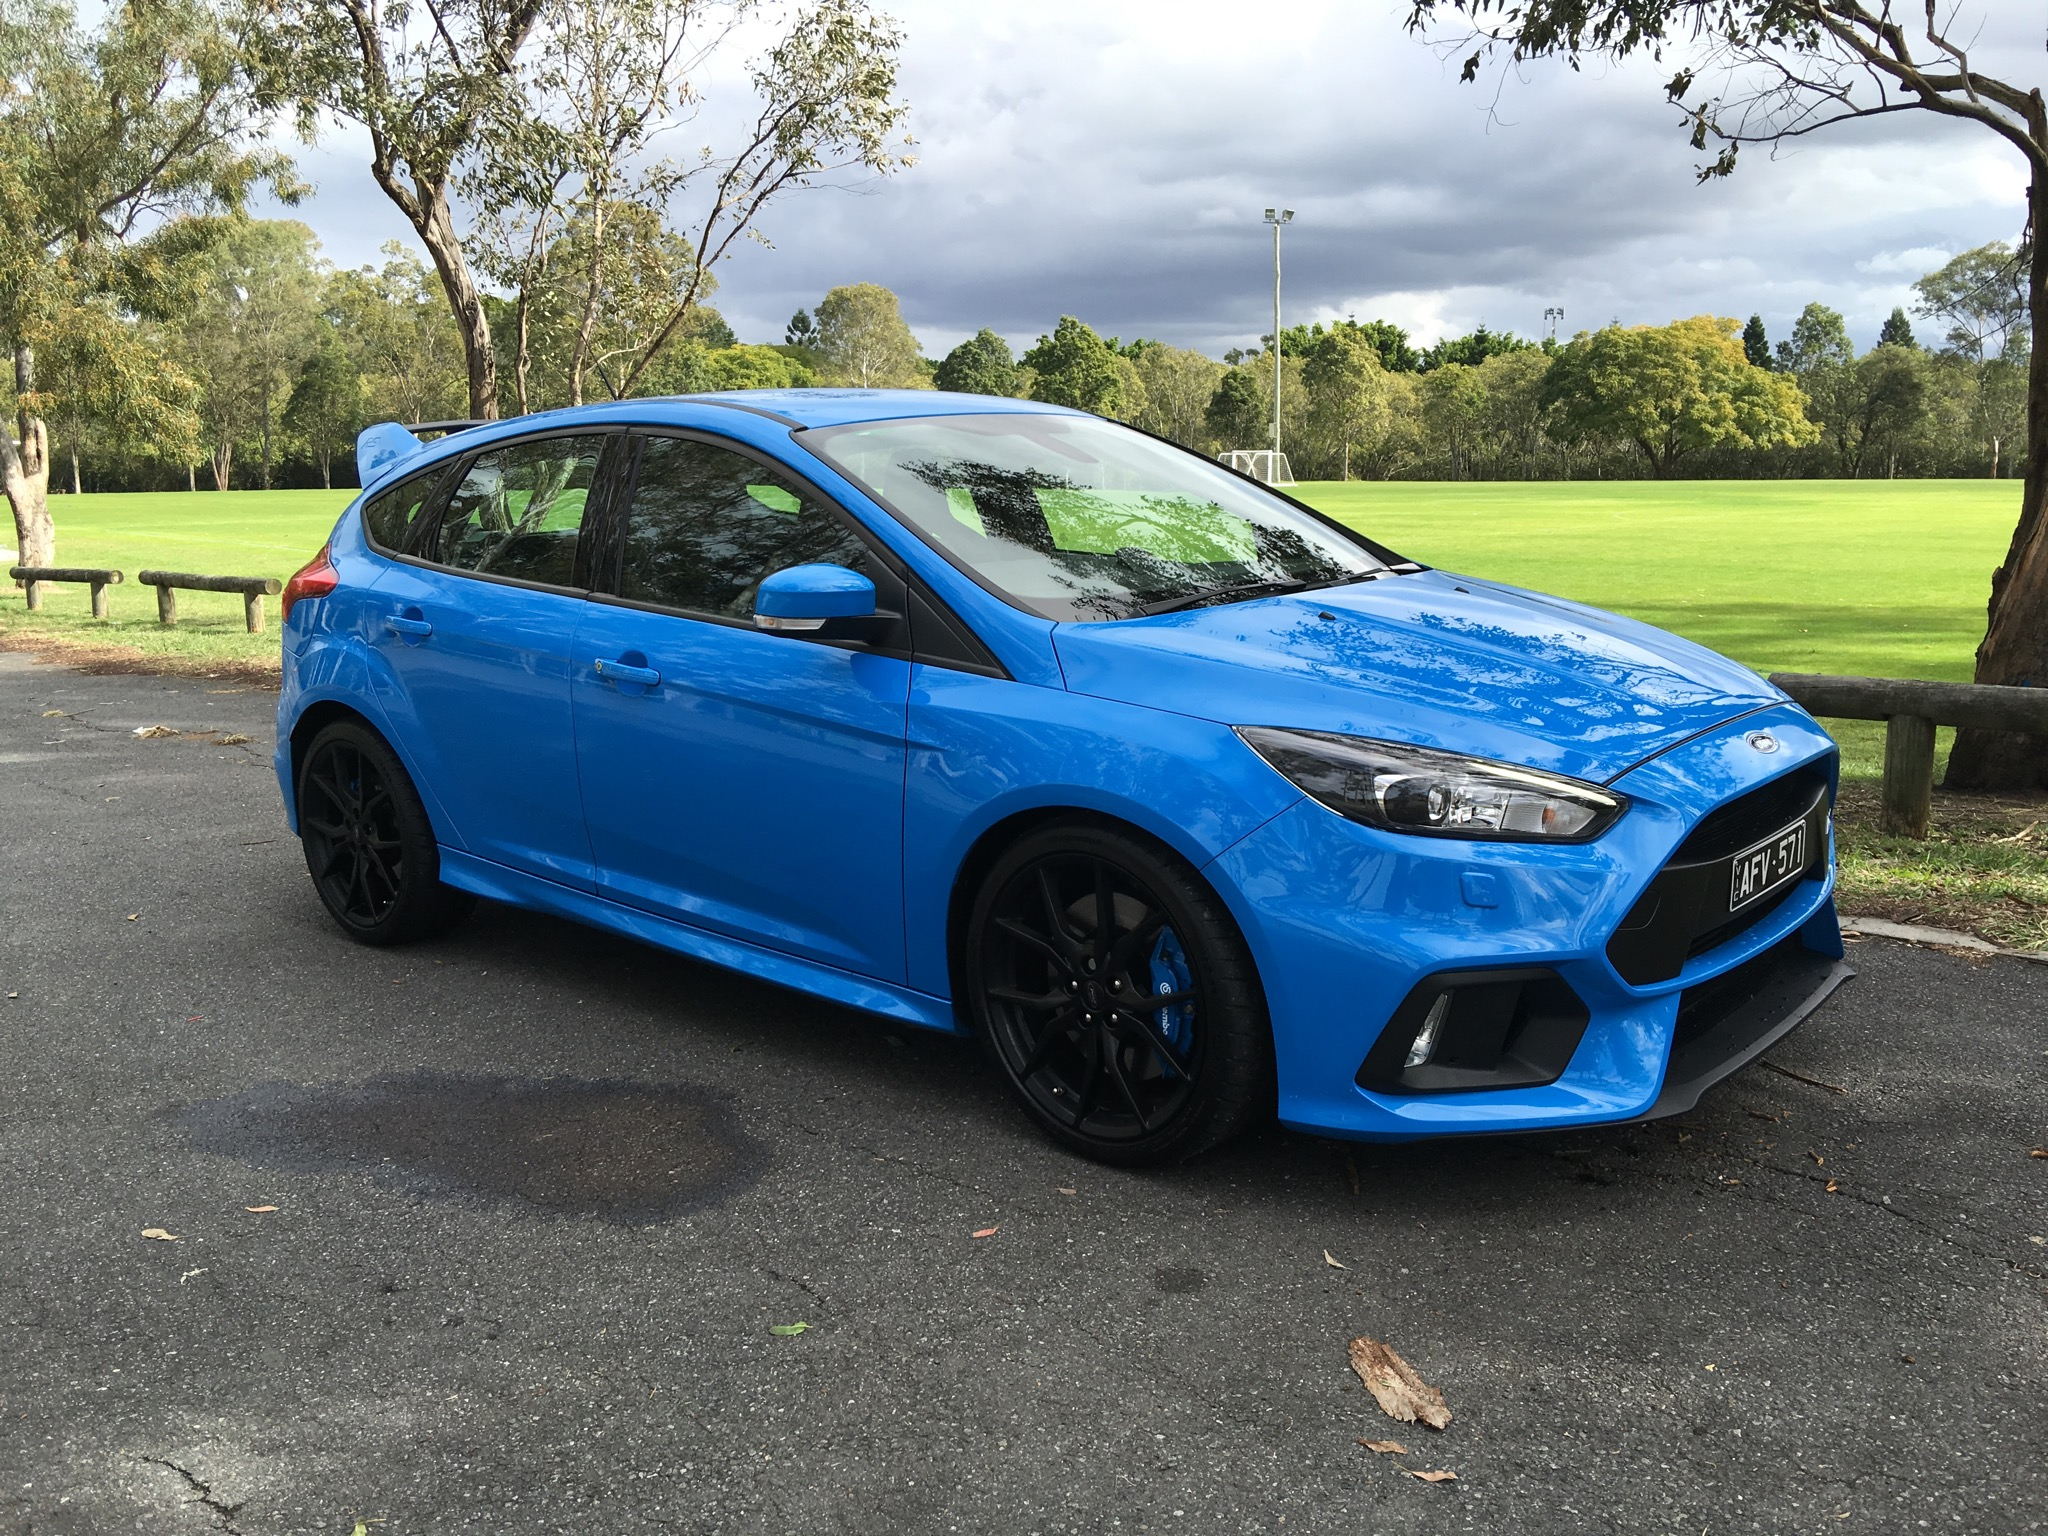 2017 Ford Focus Rs Price Review Specs Ford Usa Reviews | 2017 - 2018 Cars Reviews